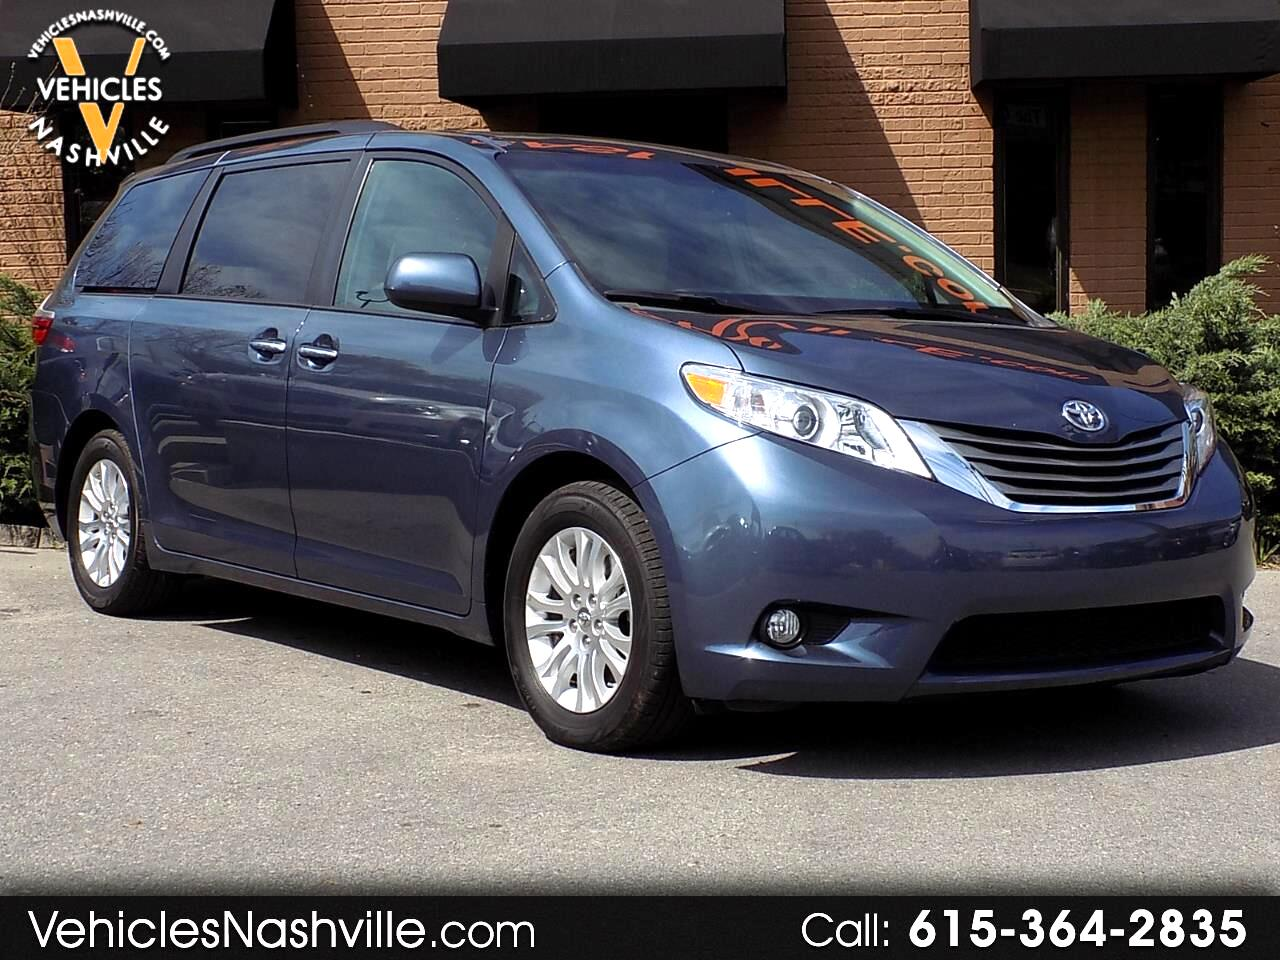 2015 Toyota Sienna 5dr 7-Pass Van XLE AAS FWD (Natl)